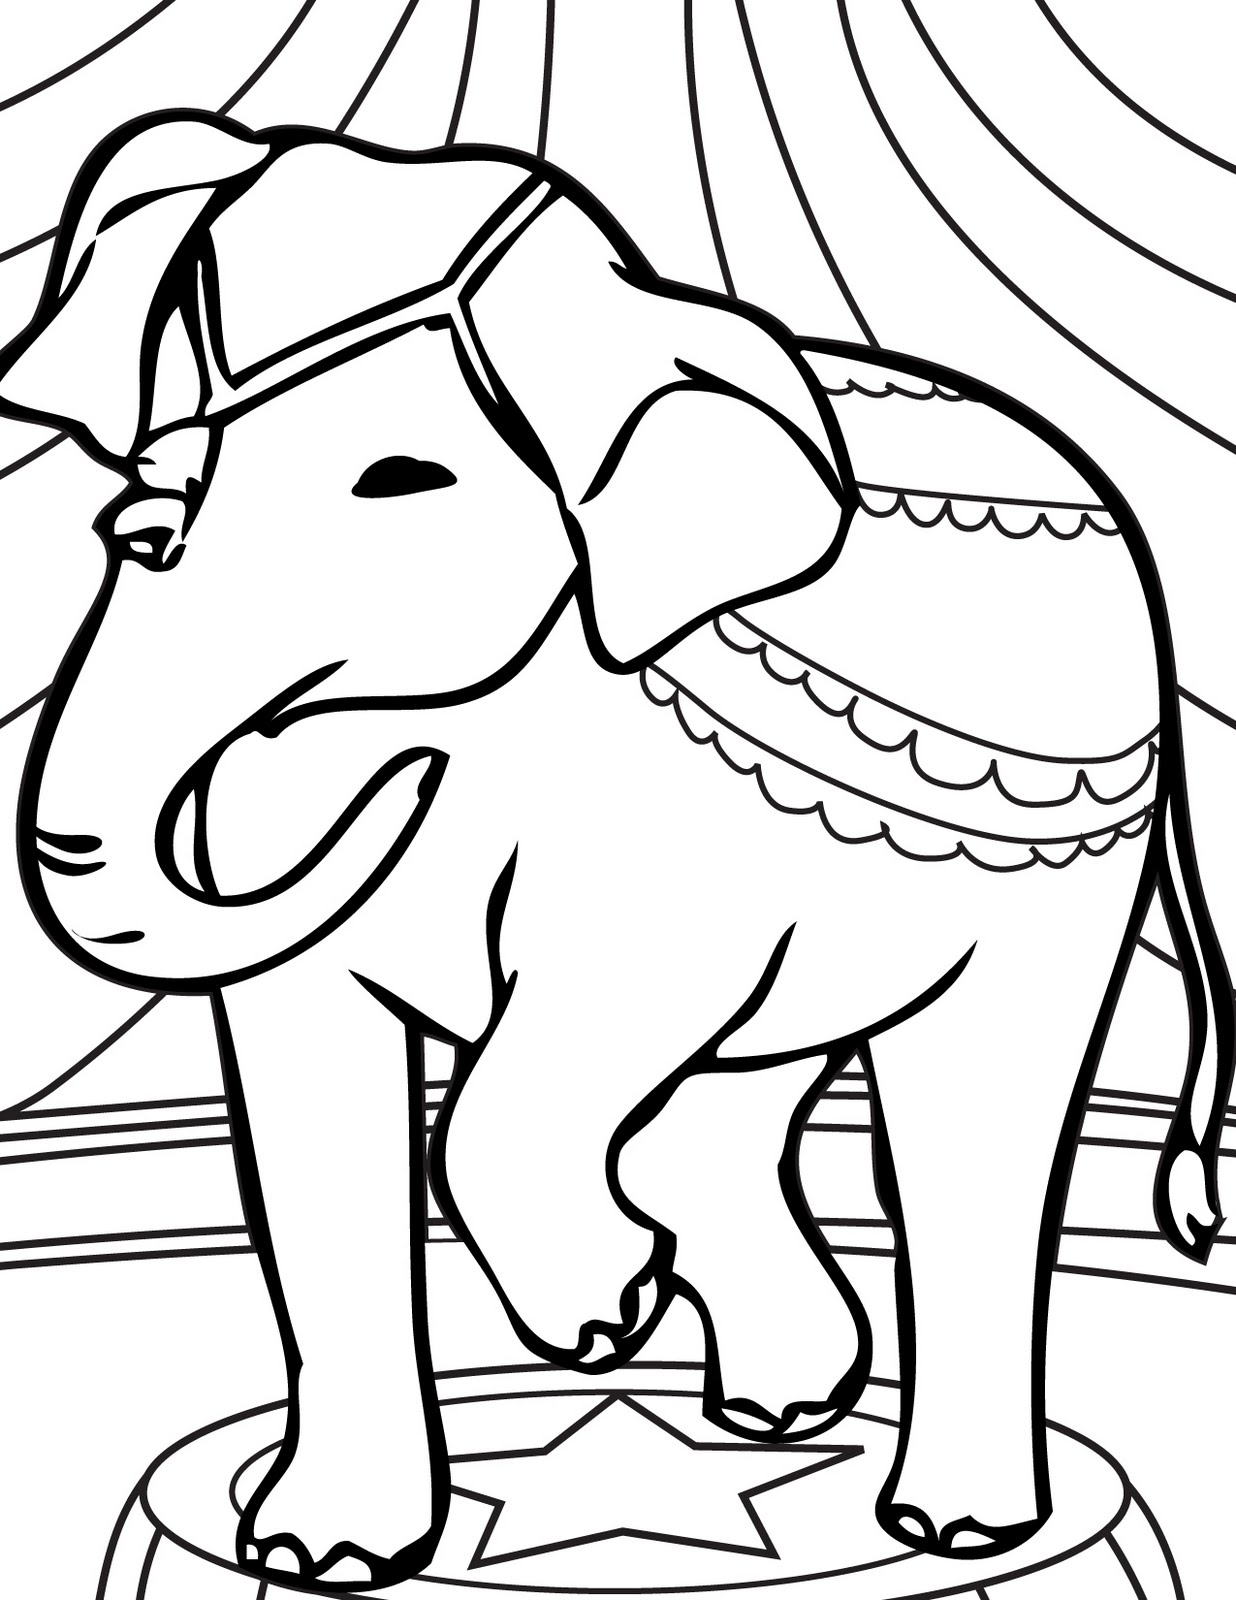 It's just an image of Revered coloring book ideas